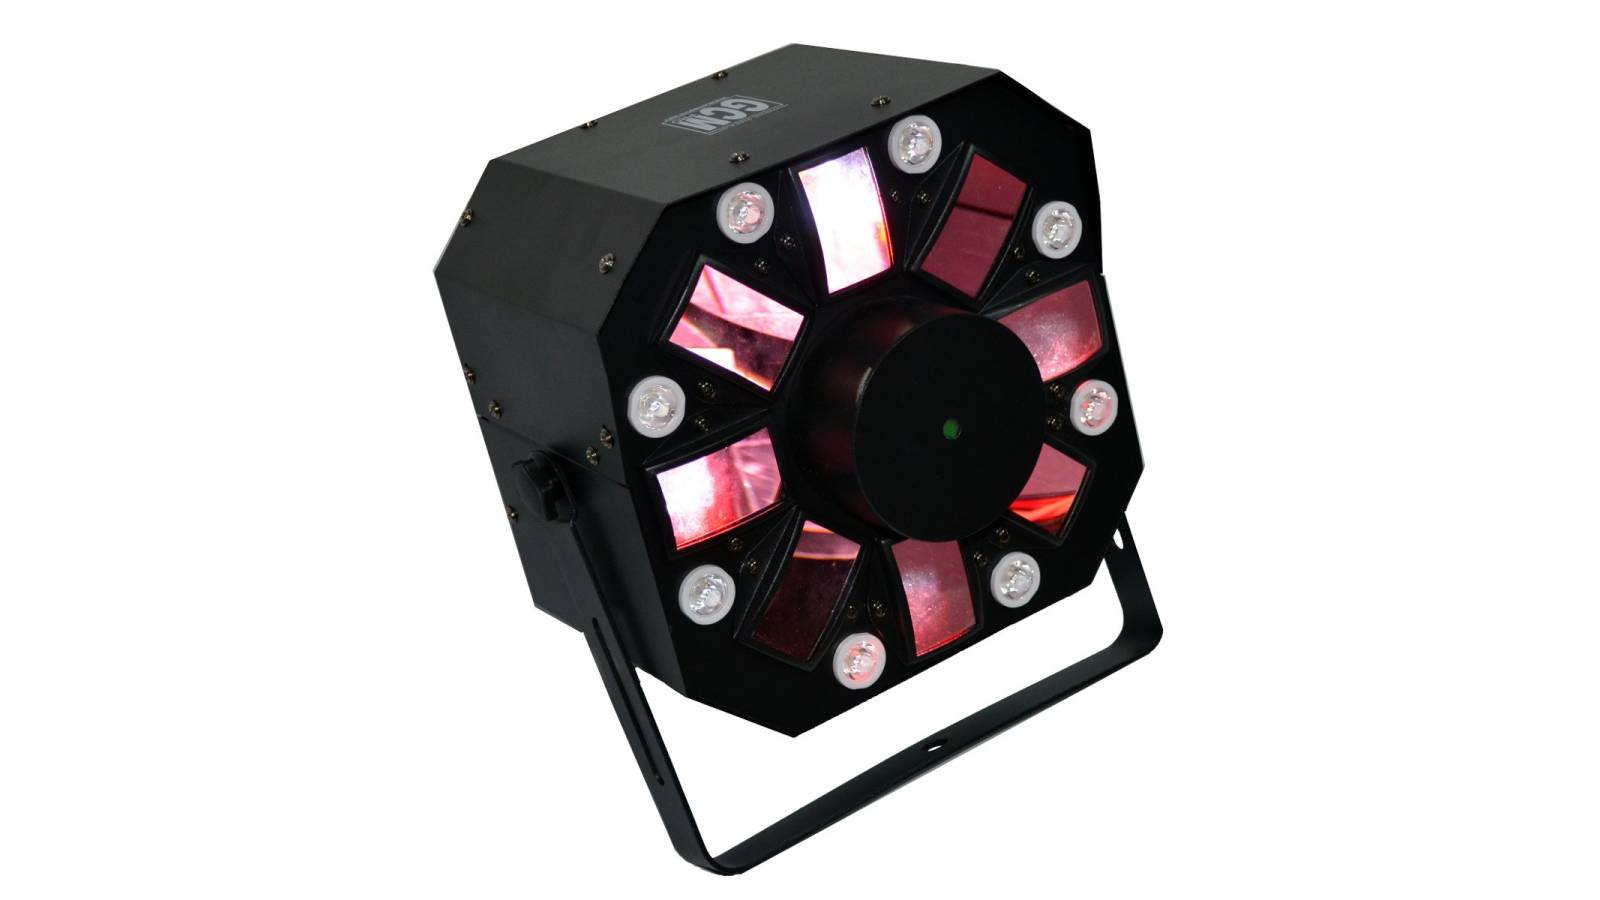 Swarm 2.0 FX 3en1 Laser + Led + Flash GS-24